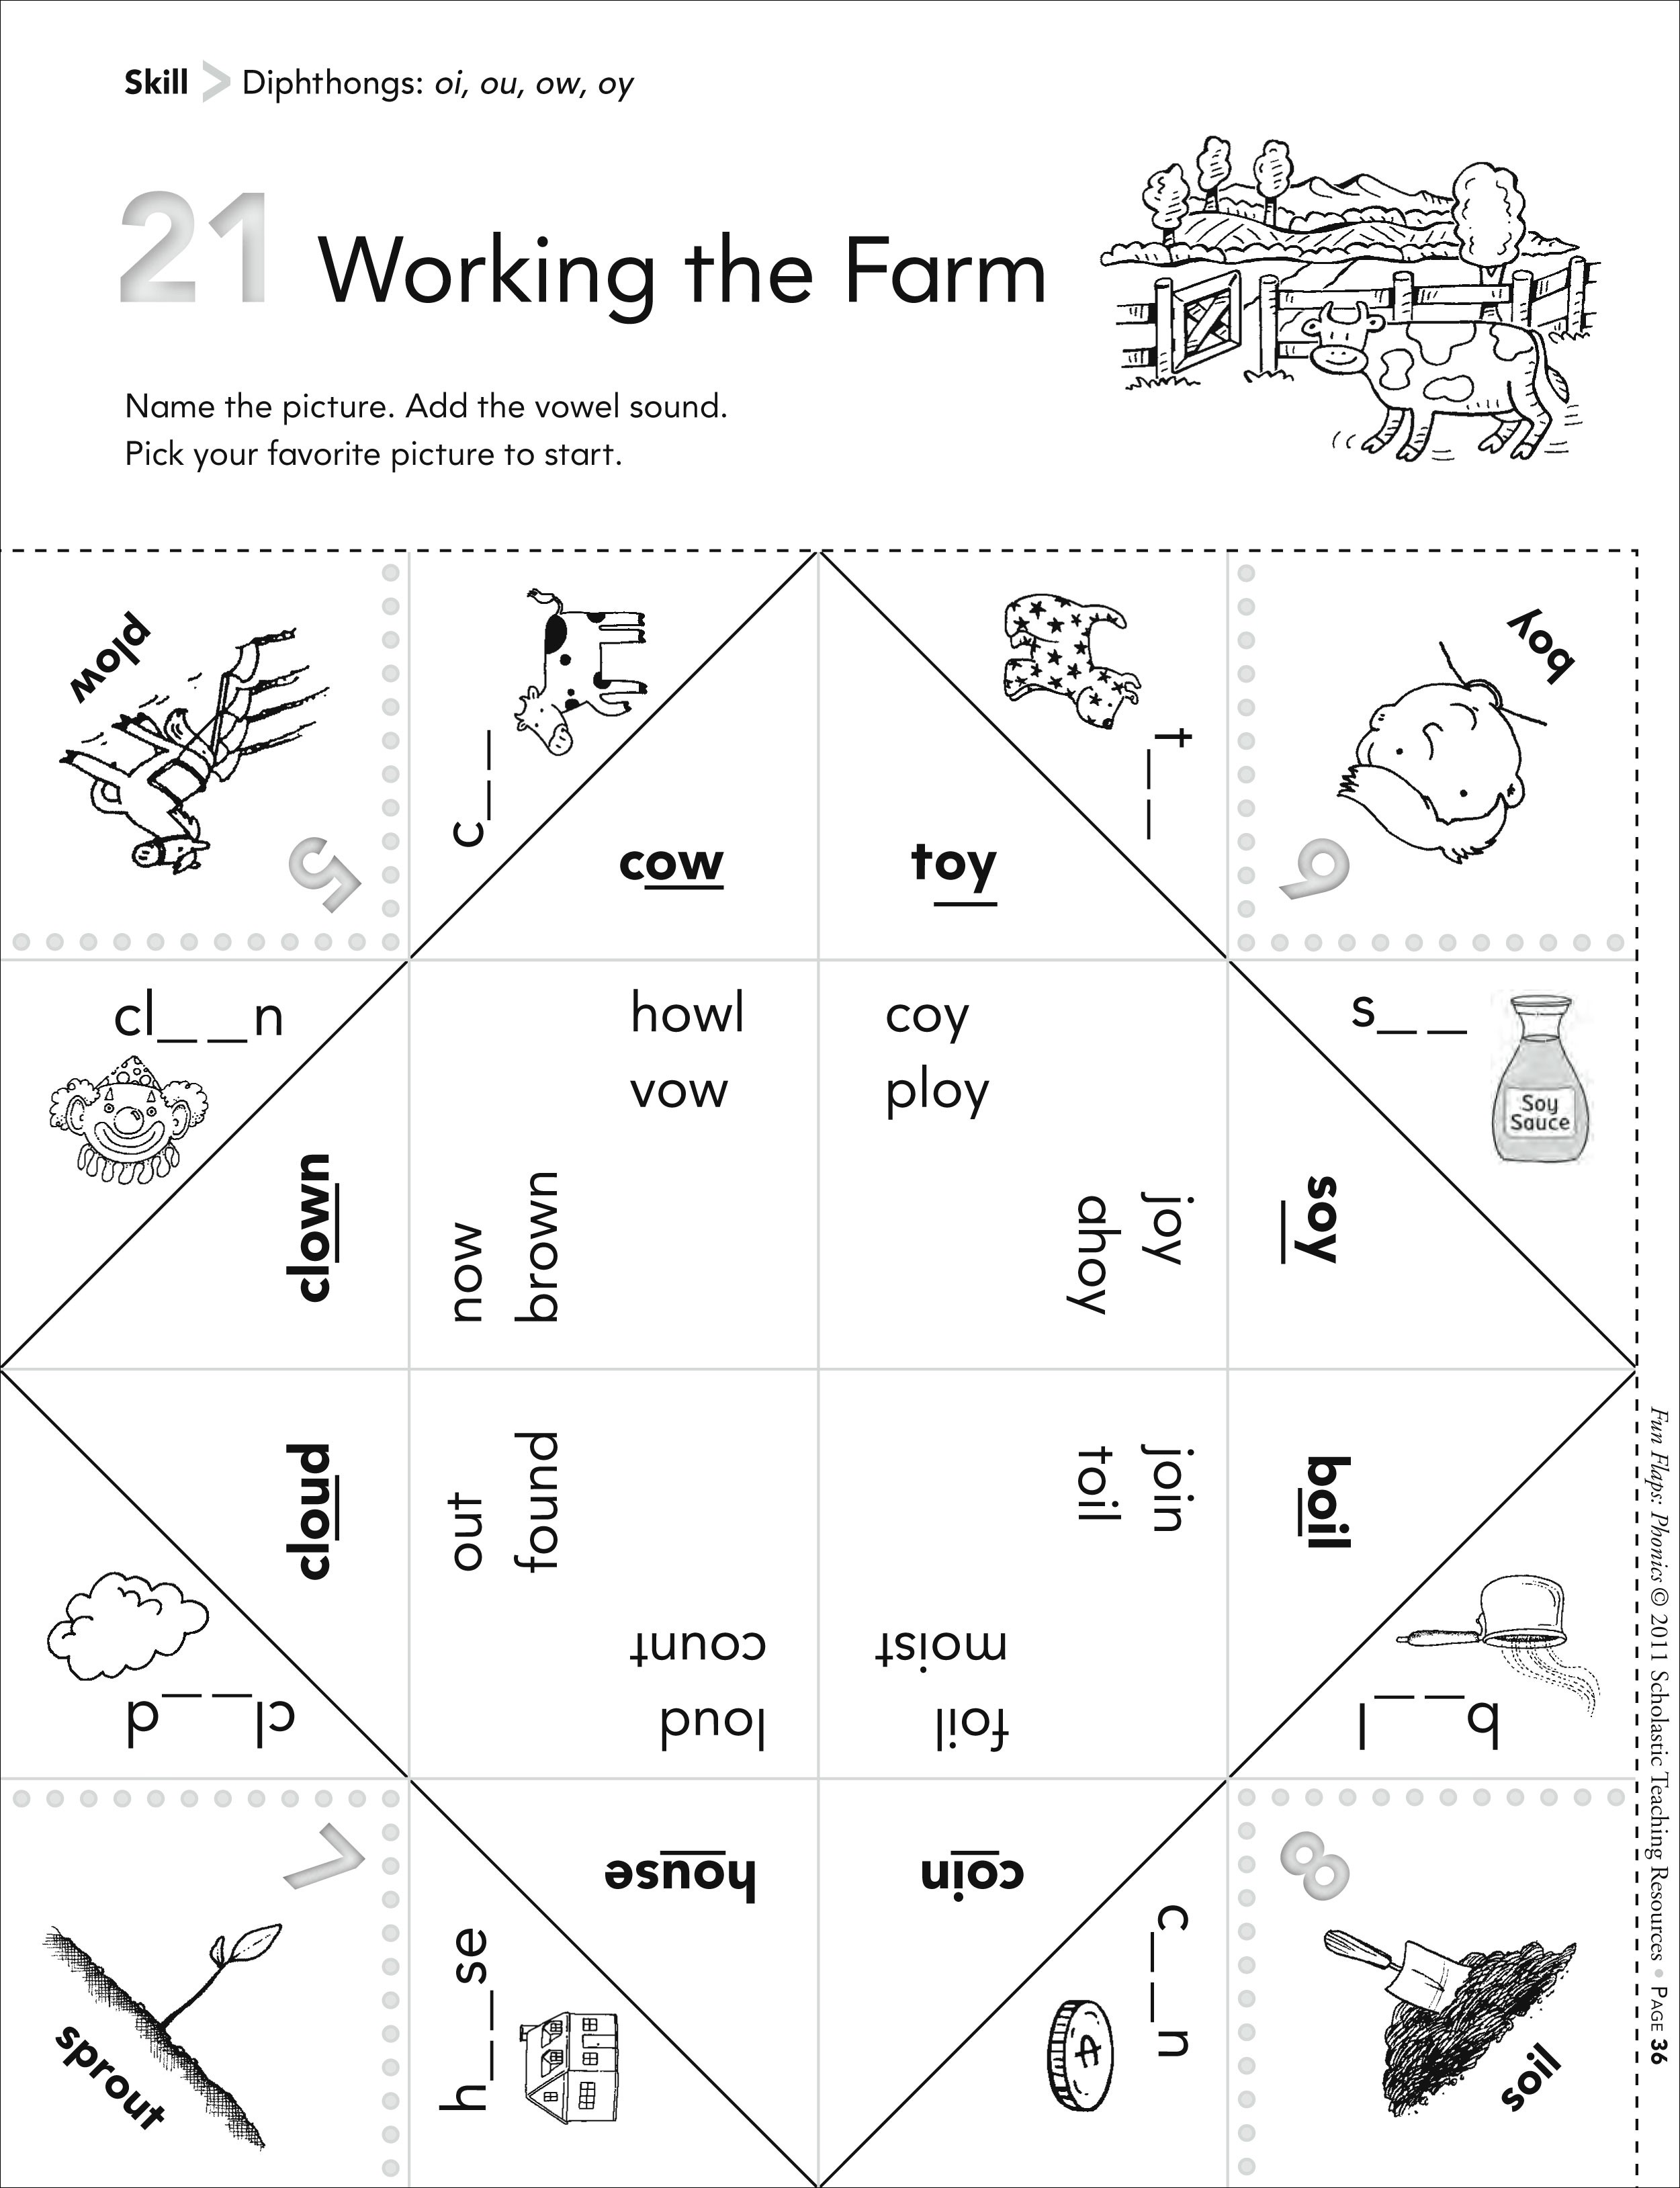 Worksheet For Oi Words